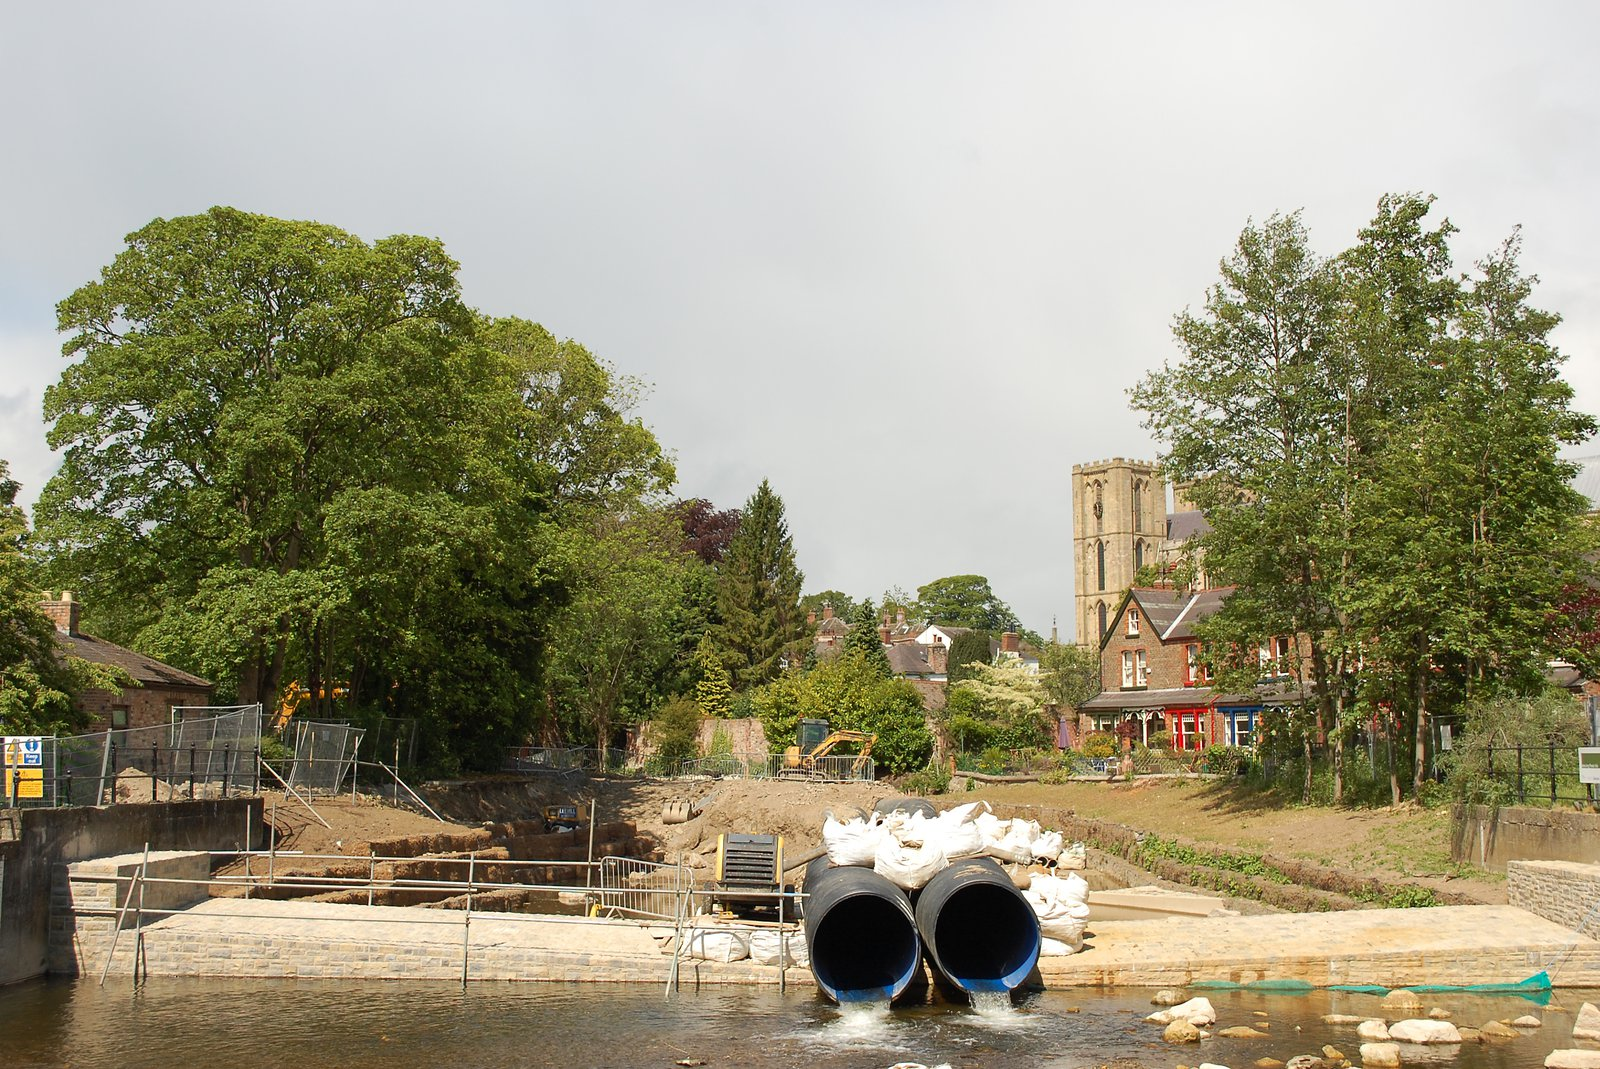 Changes To Alma Weir On River Skell In Ripon